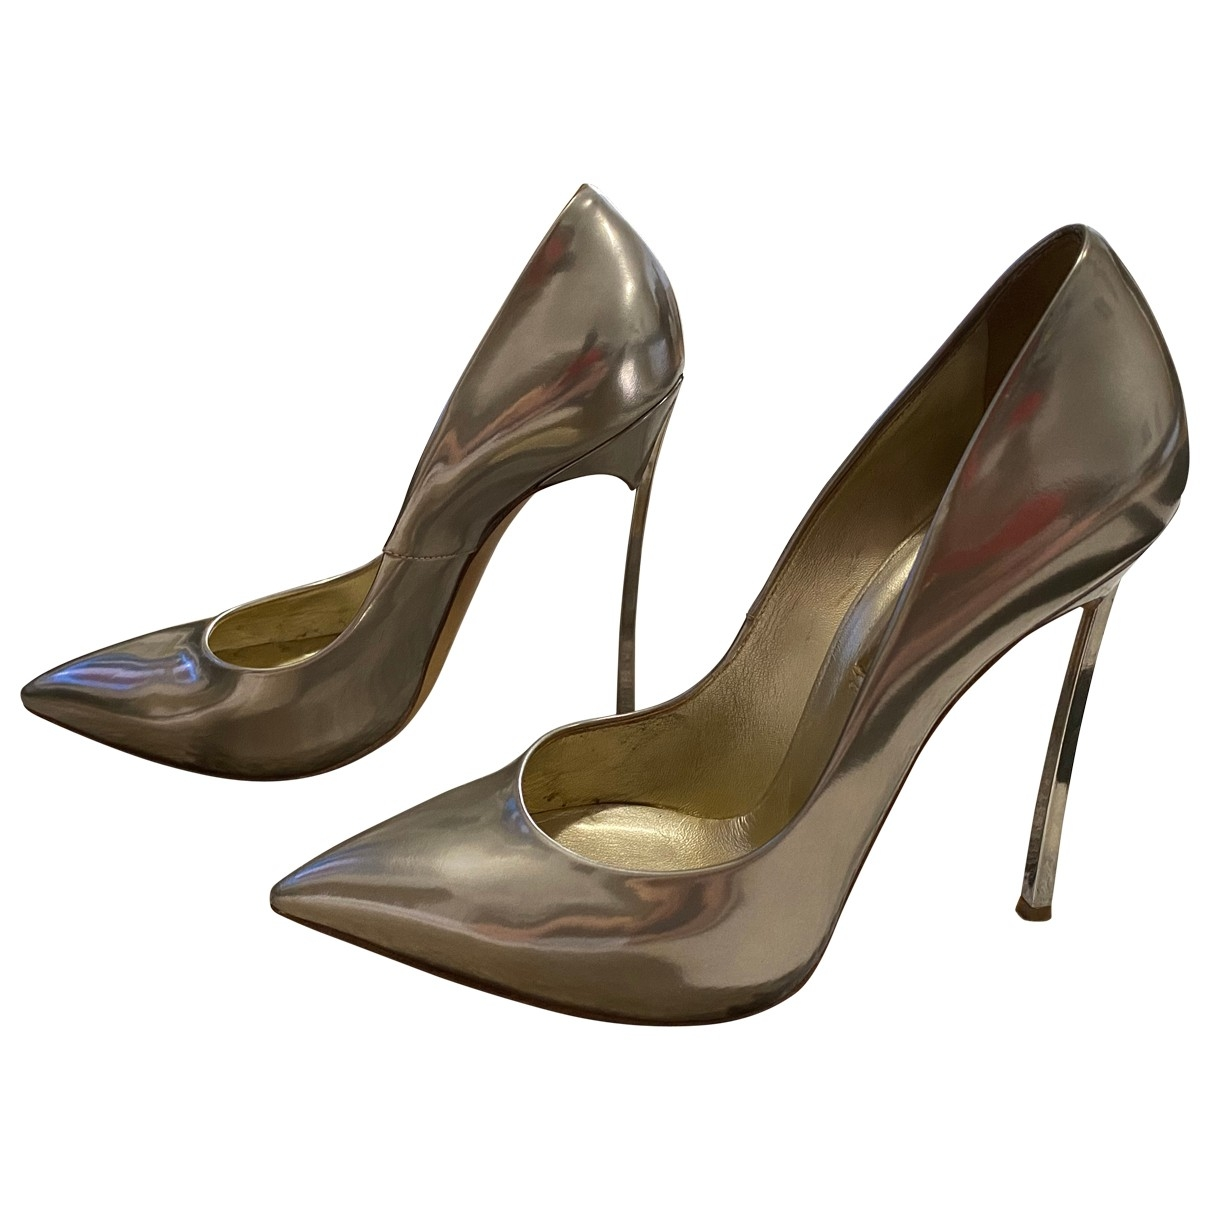 Casadei \N Silver Patent leather Heels for Women 9 US